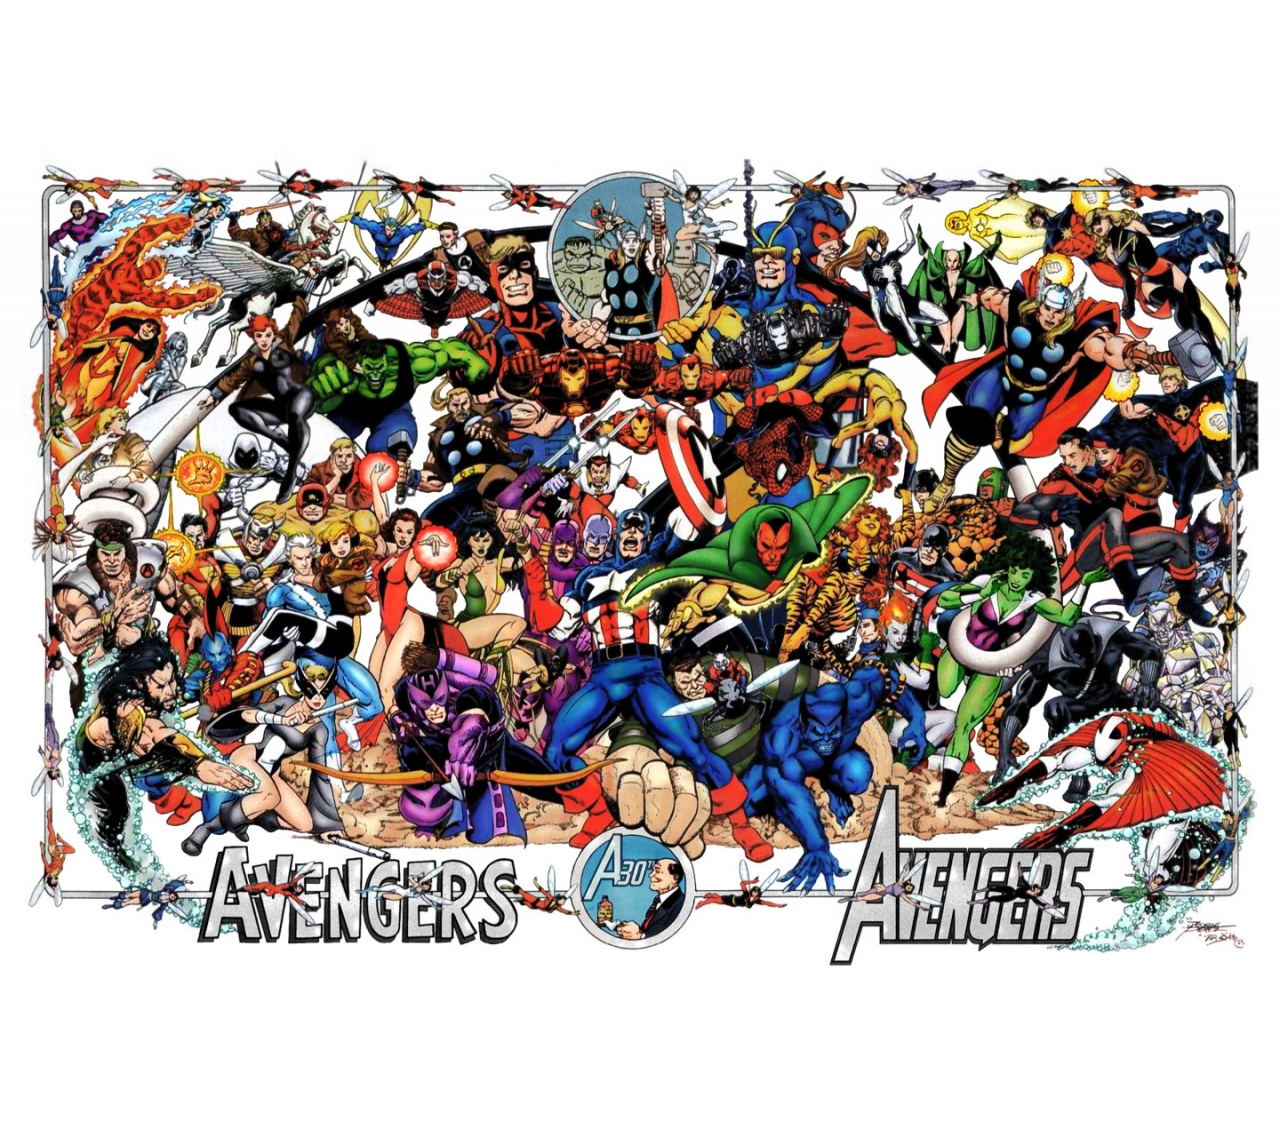 Avengers 30th Anniversary Poster by George Perez